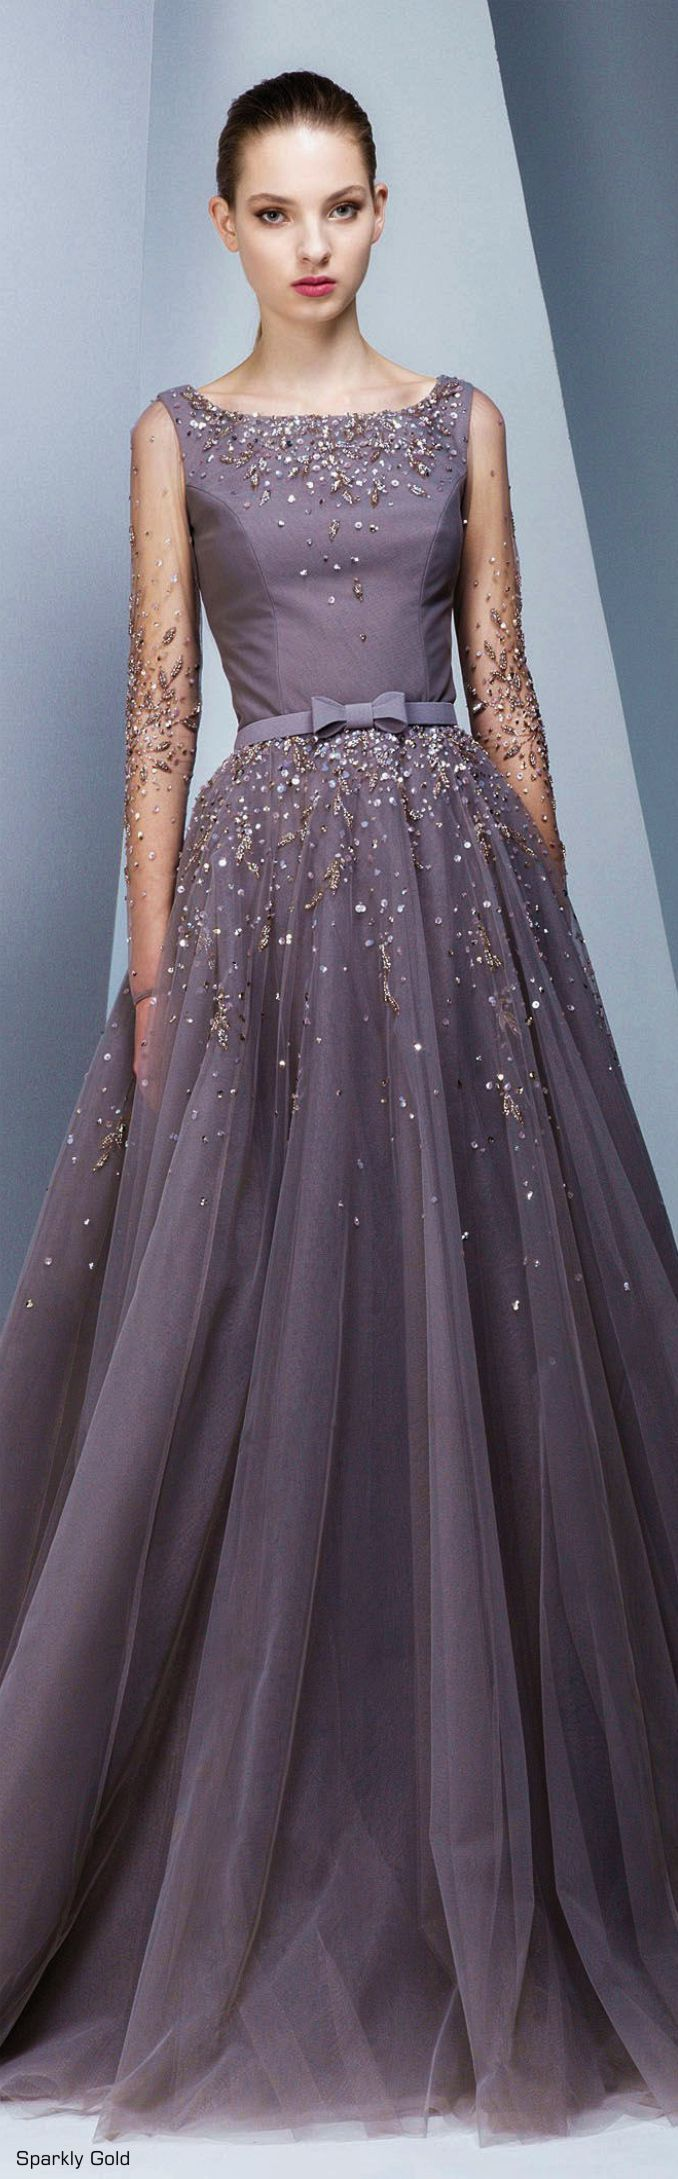 Purple wedding ideas with pretty details long sleeve evening